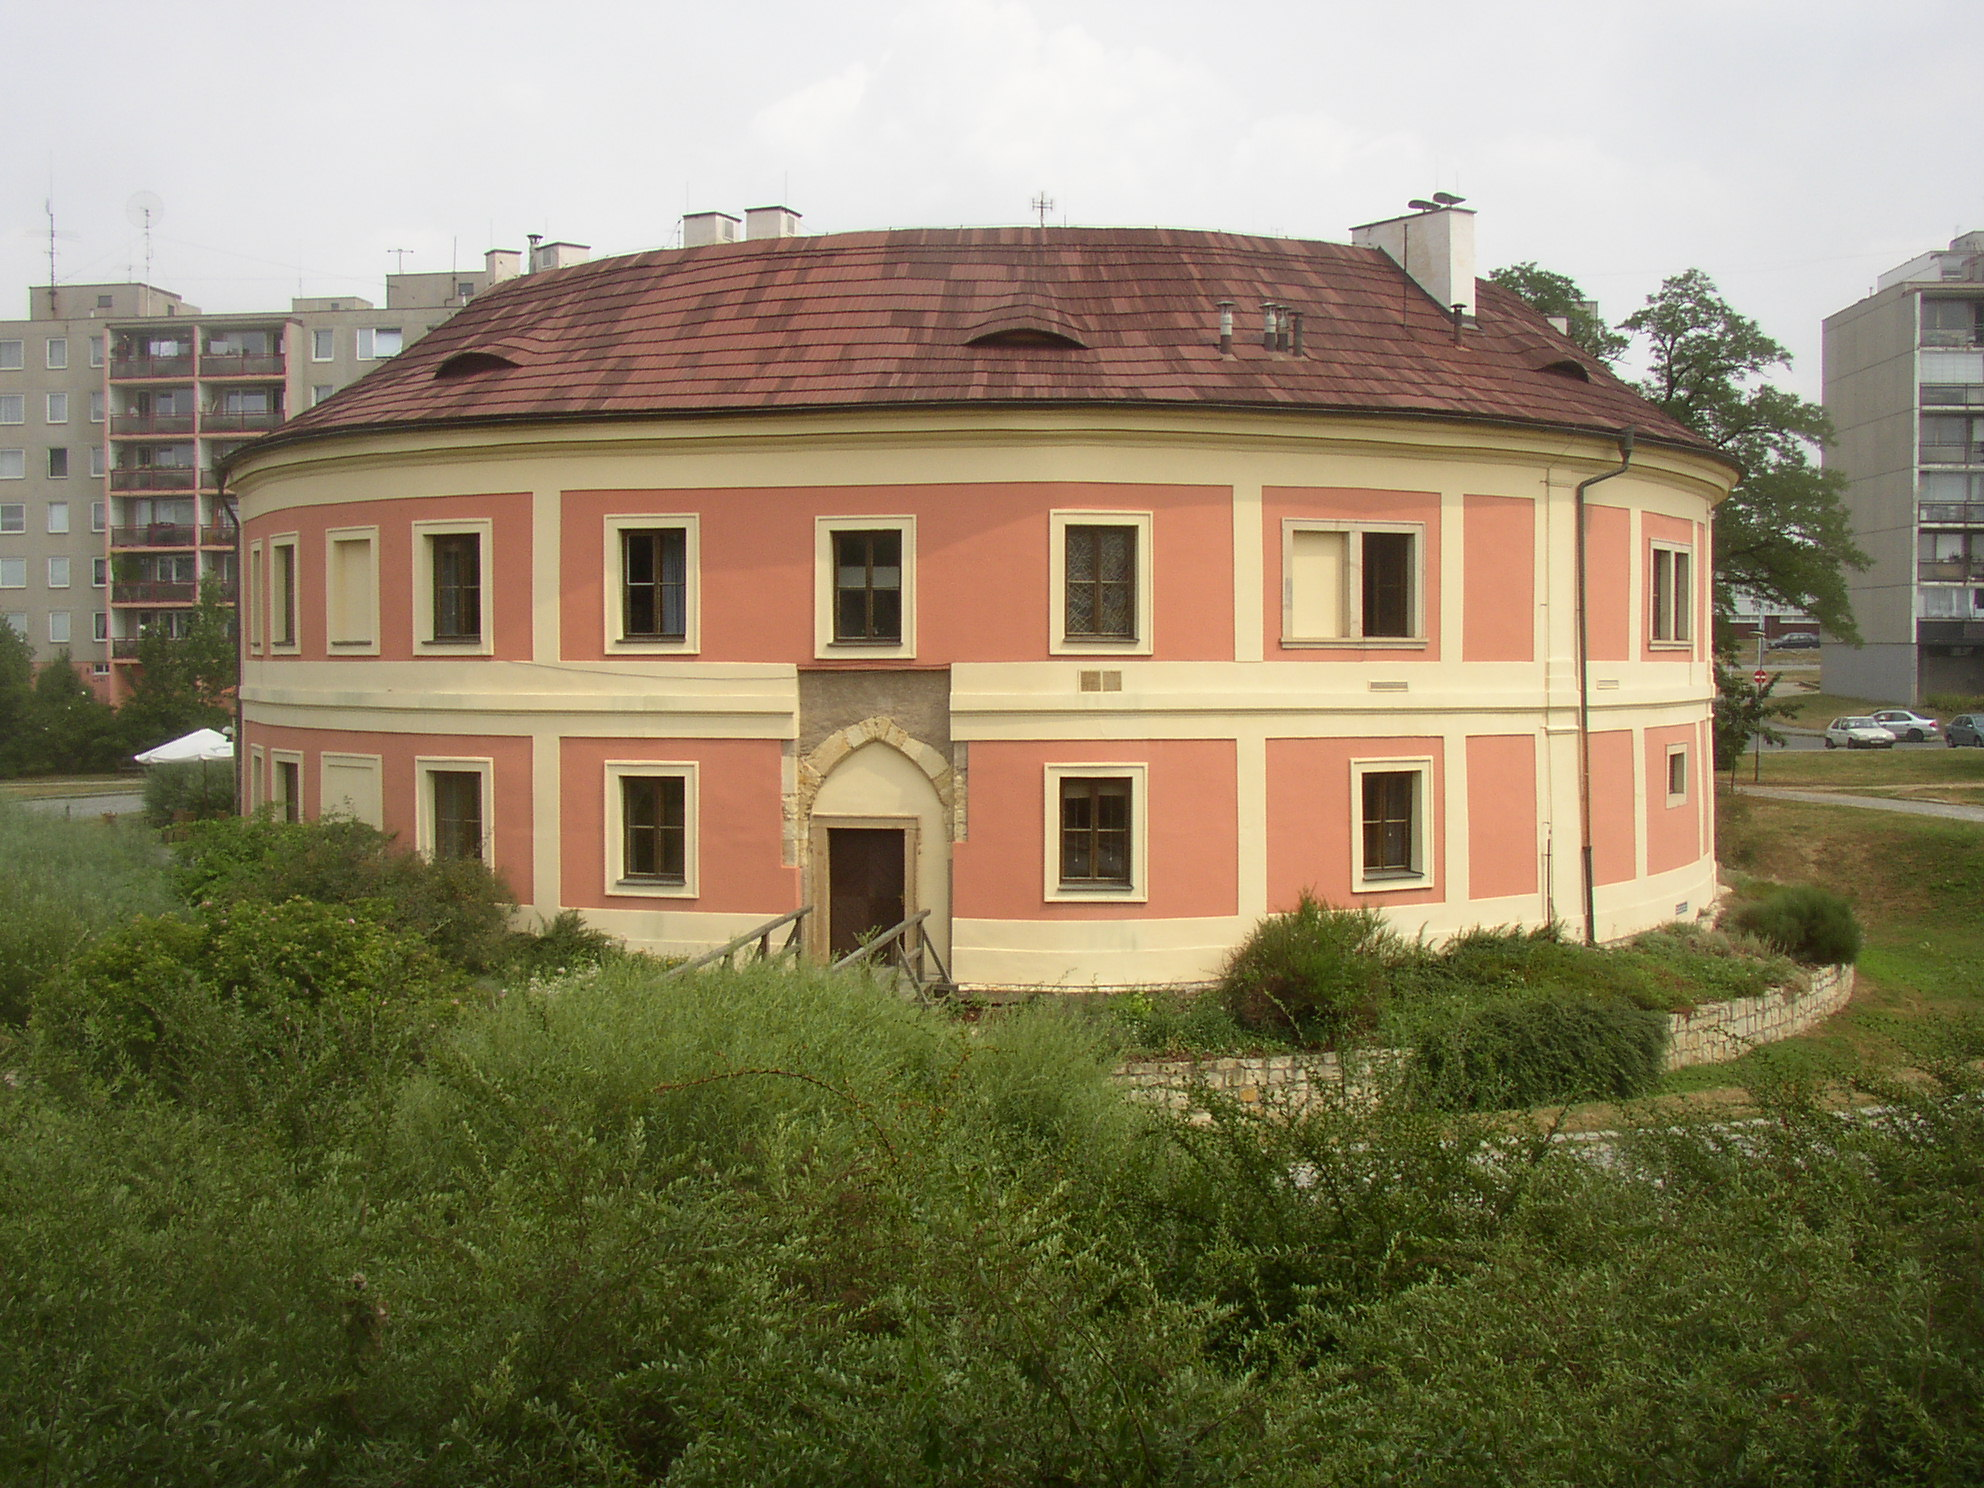 Chodovská tvrz (zdroj: User:Miaow Miaow, Public domain, via Wikimedia Commons)